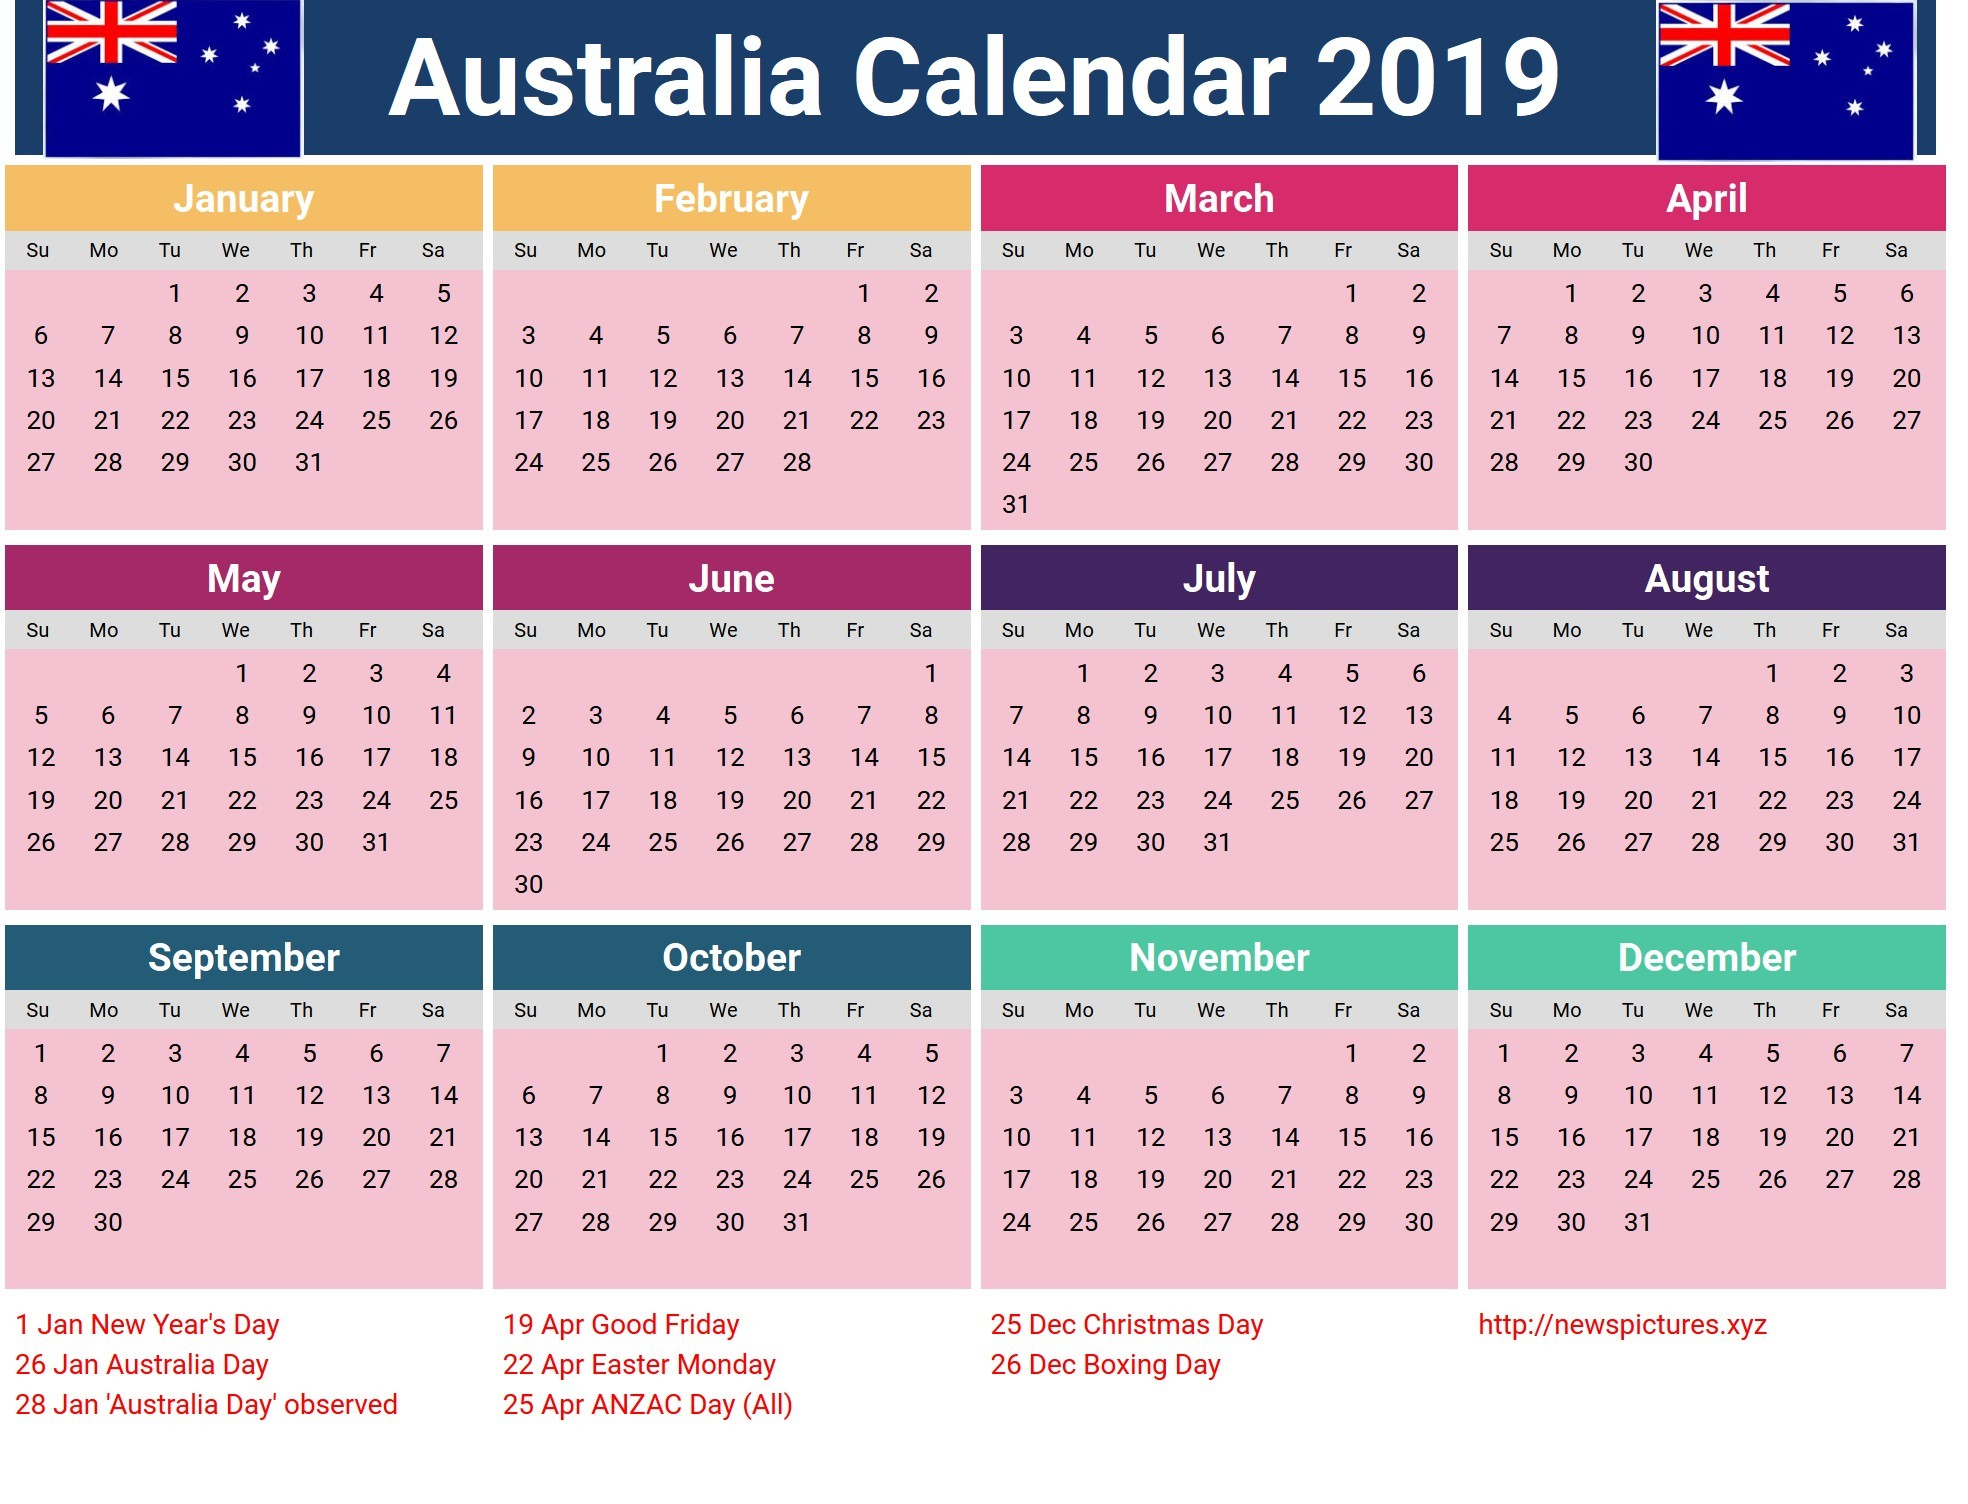 Calendario De 2019 Abril Recientes 2019 Calendar Template Australia 89 Free Calendar Templates for 2018 Of Calendario De 2019 Abril Recientes 2019 Calendar Template Australia 89 Free Calendar Templates for 2018